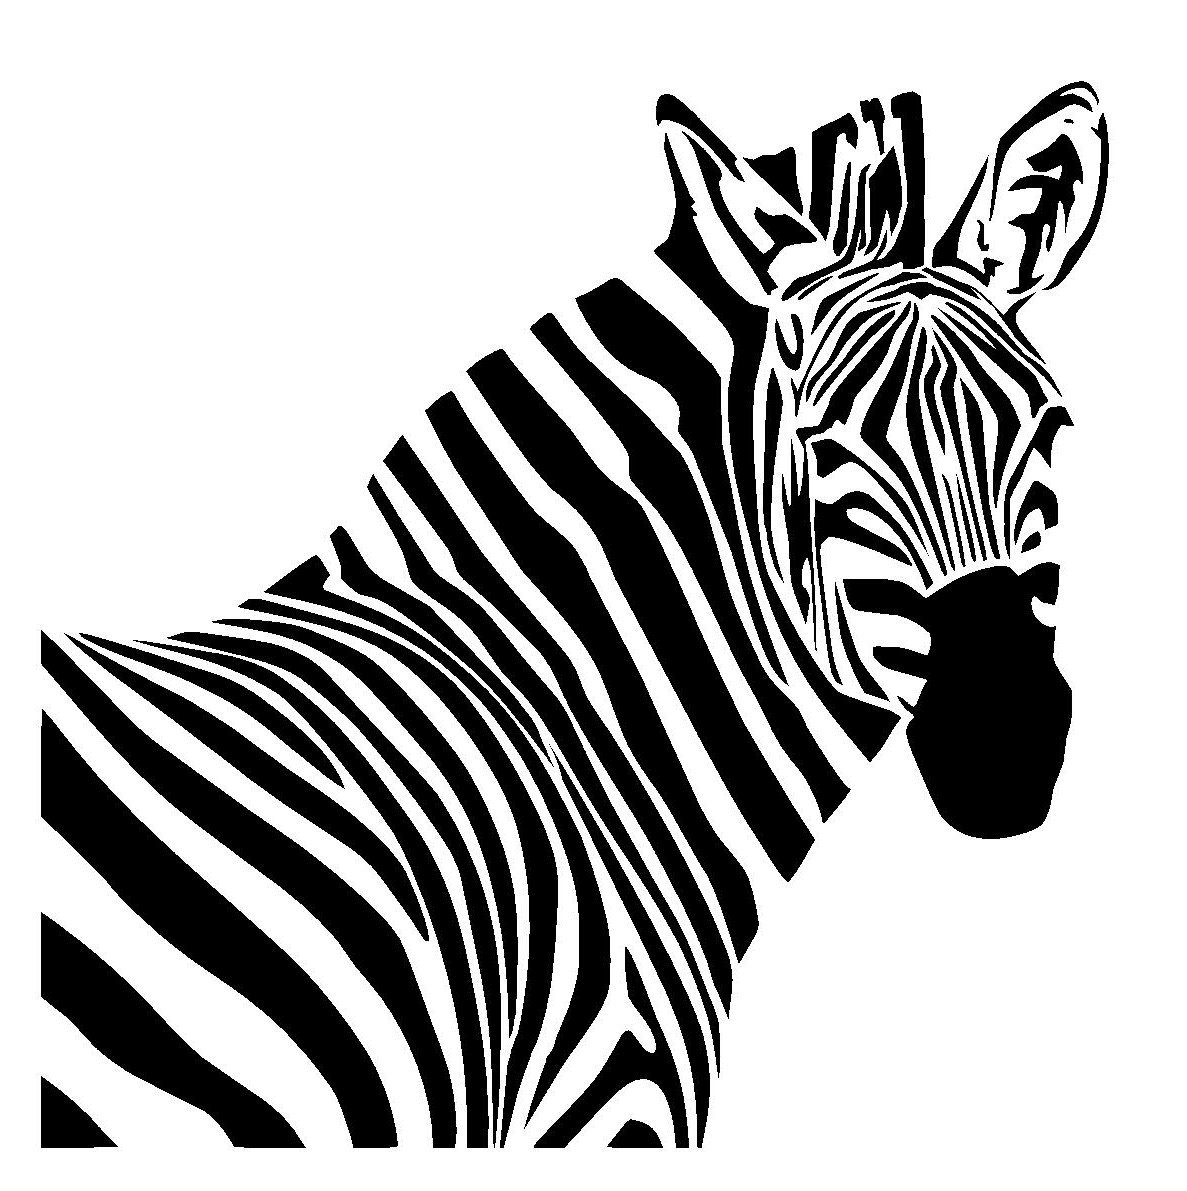 Zebra stencil 1. Choose size and thickness.